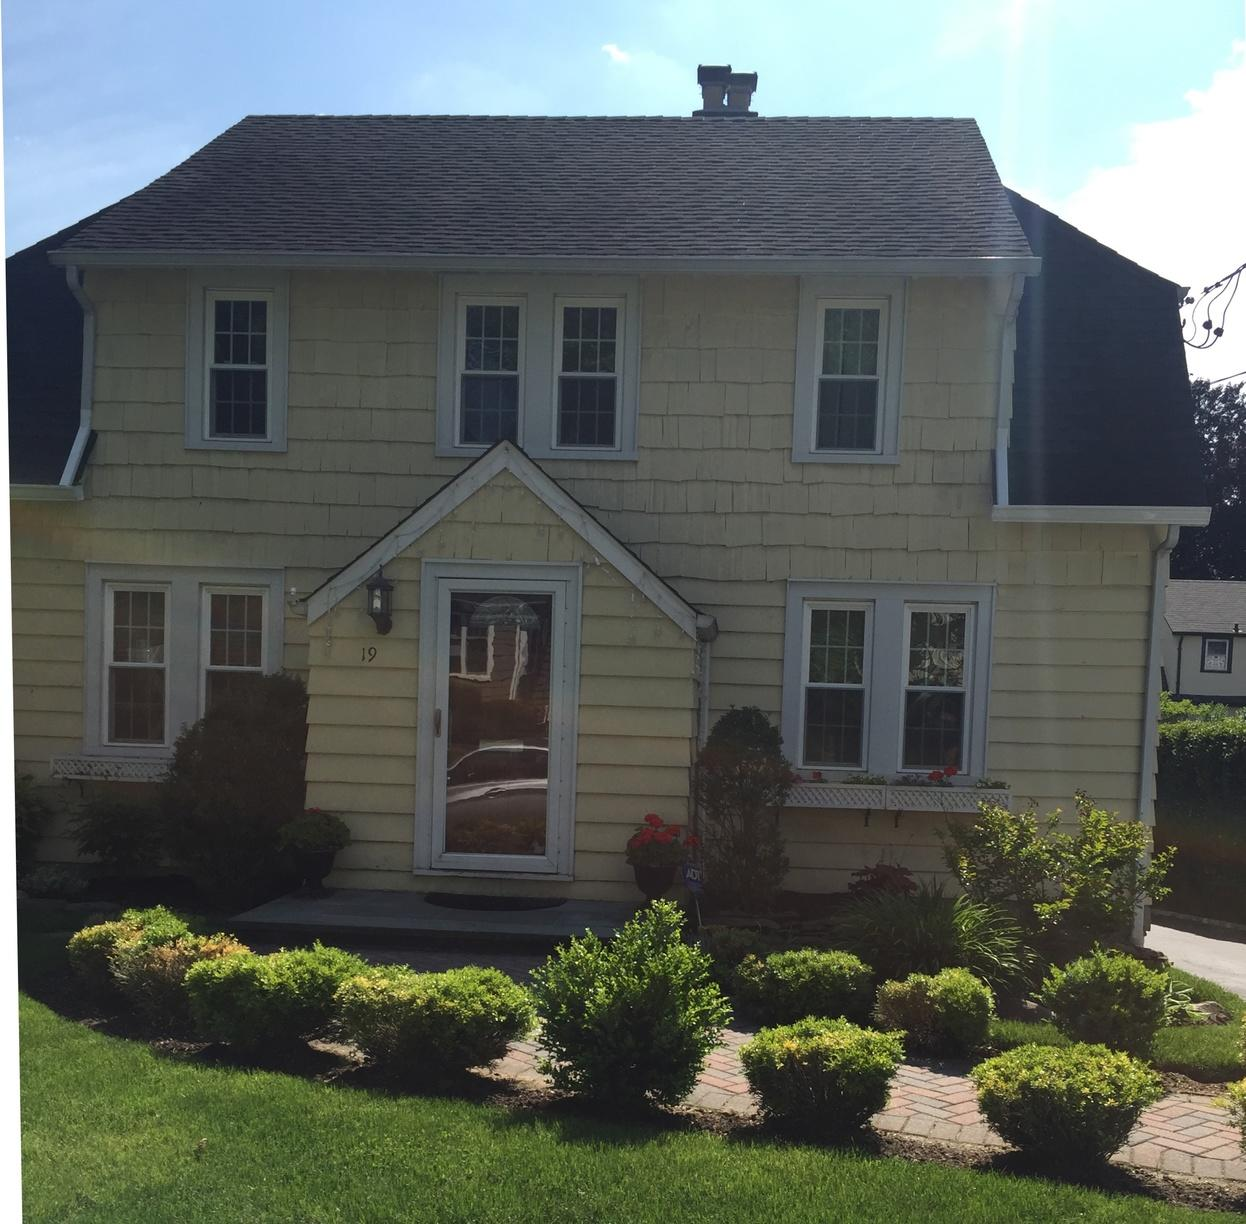 Manhasset, NY Siding Replacement Project - Before Photo